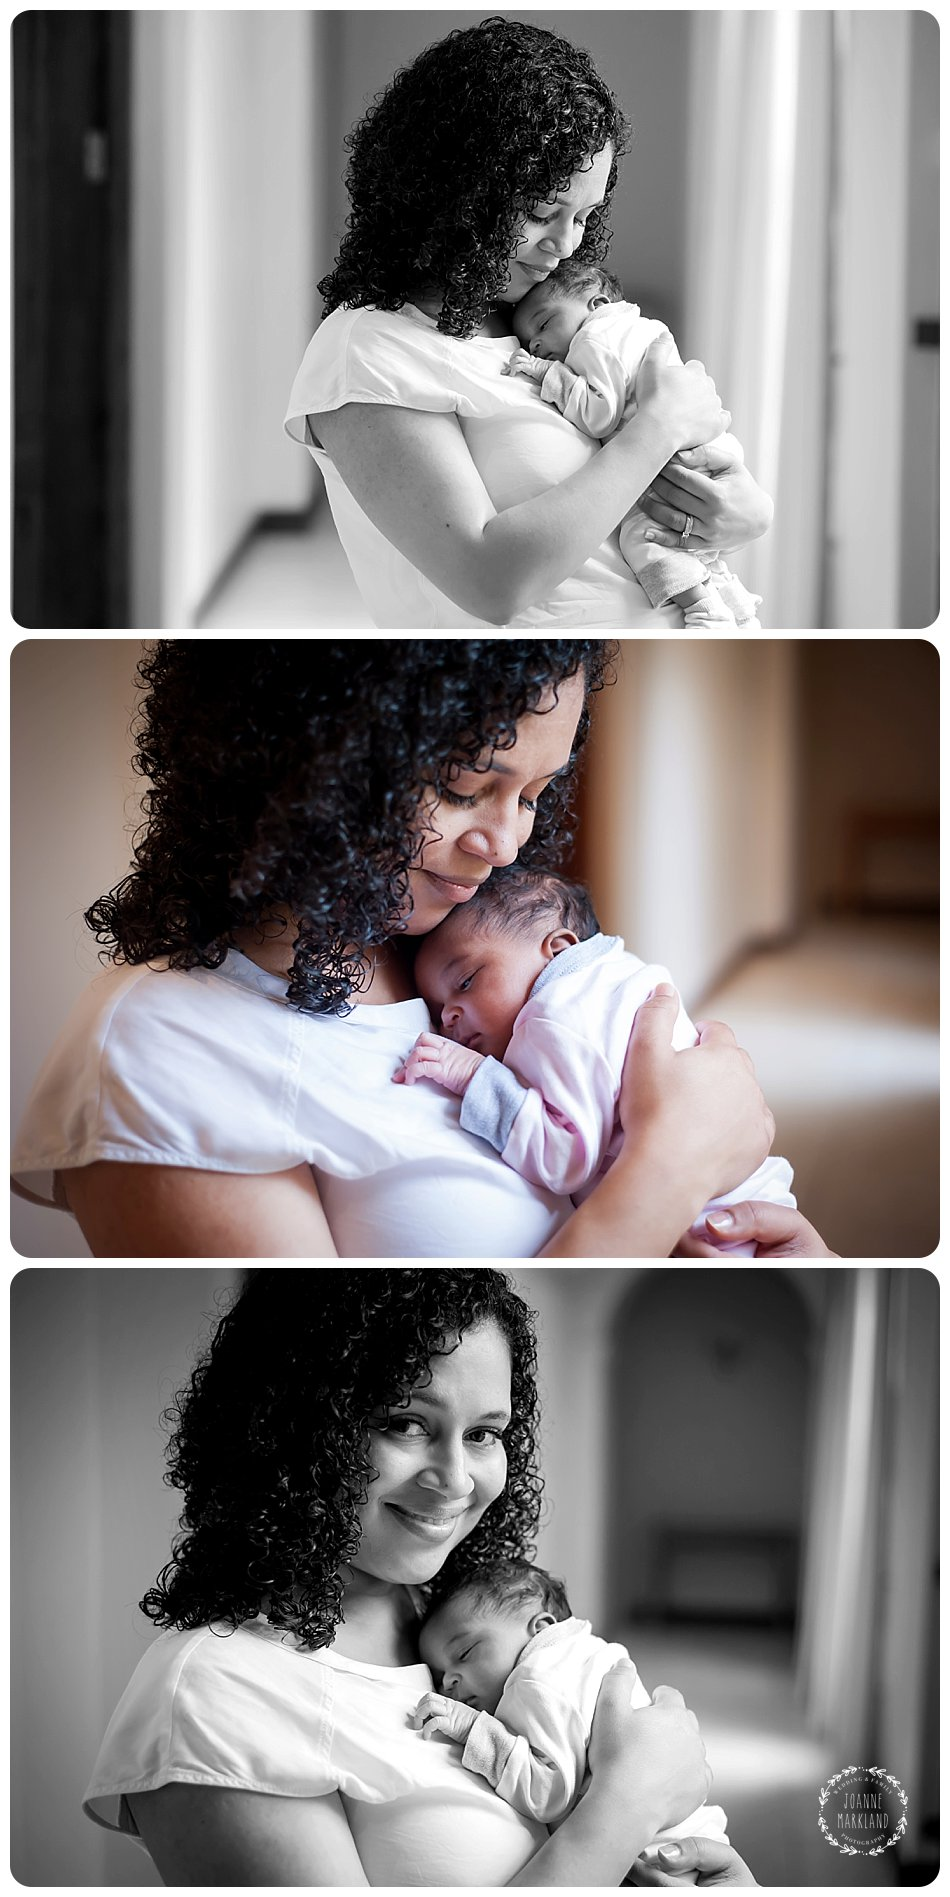 constantia maternity newborn photography, newborn photography cape town, top maternity photographer cape town, best newborn photographer cape town, newborn, baby bump